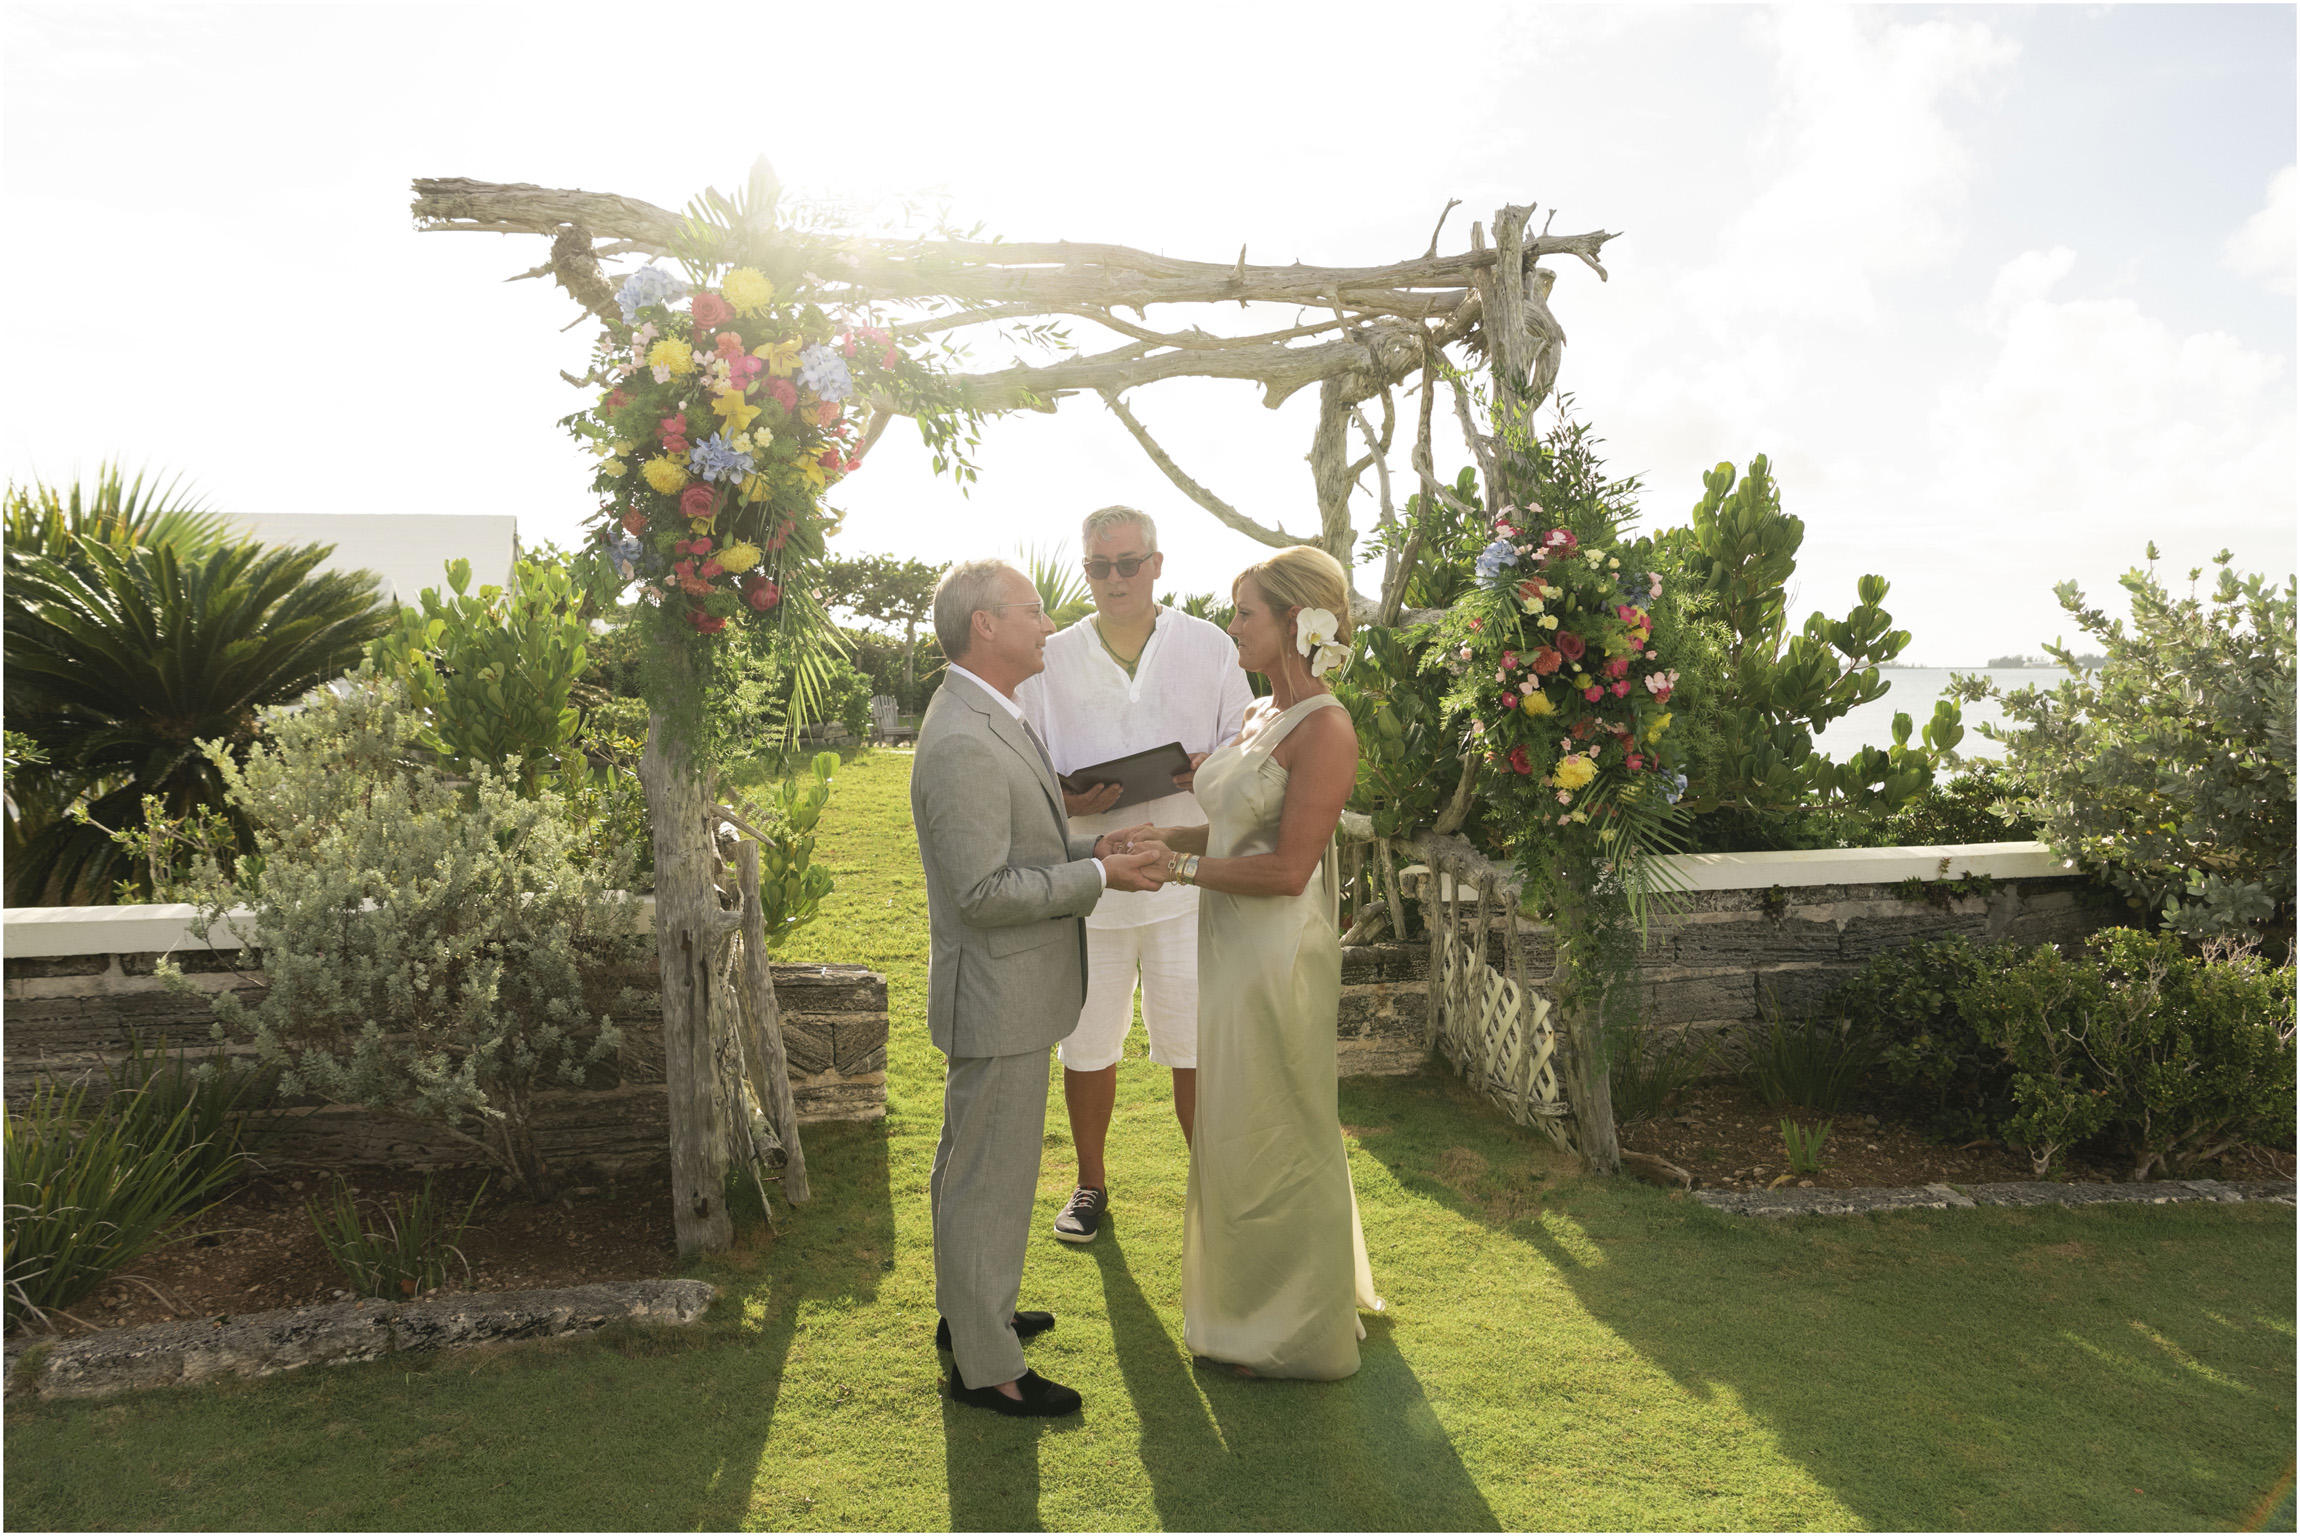 ©FianderFoto_Bermuda_Wedding_Photographer_Long_Island_Bermuda_Nancy_Ray_066.jpg